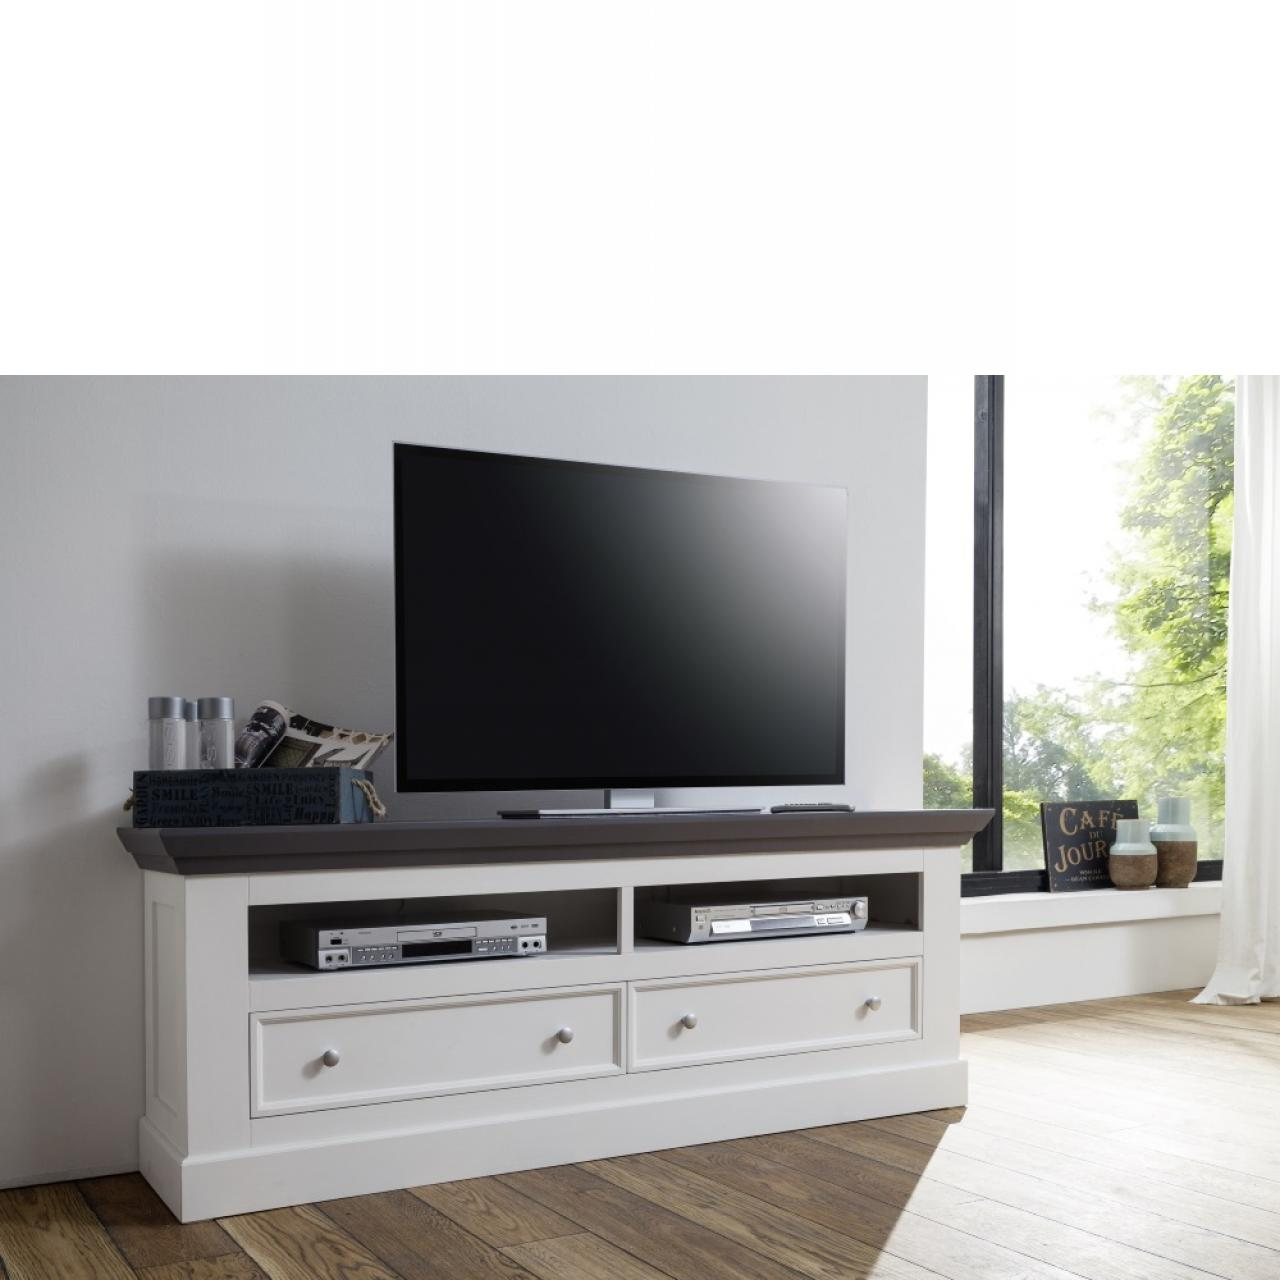 tv lowboard aus paulowniaholz landhausstil wei m bel j hnichen center gmbh. Black Bedroom Furniture Sets. Home Design Ideas